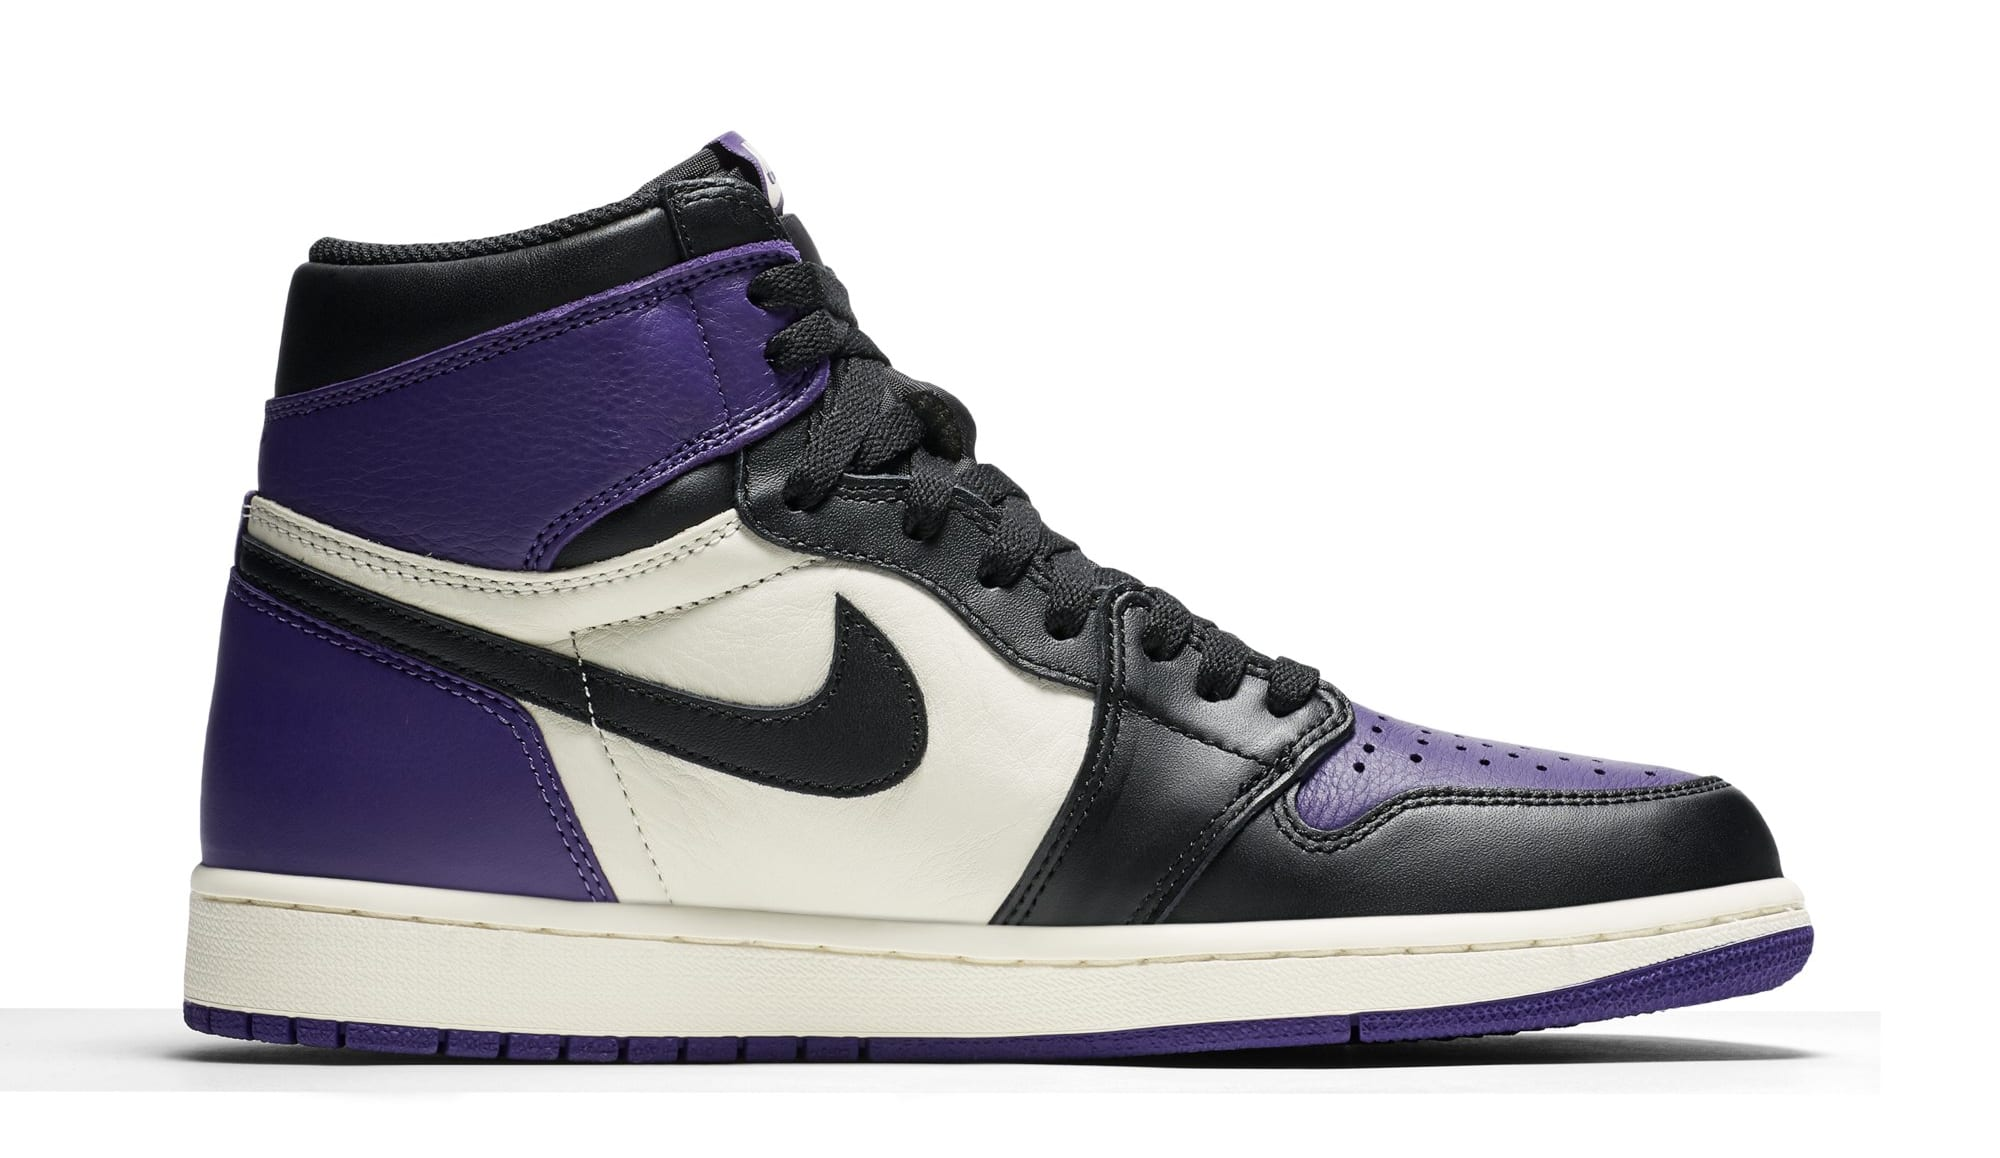 Air Jordan 1 High OG 'Court Purple' 555088-501 (Medial)